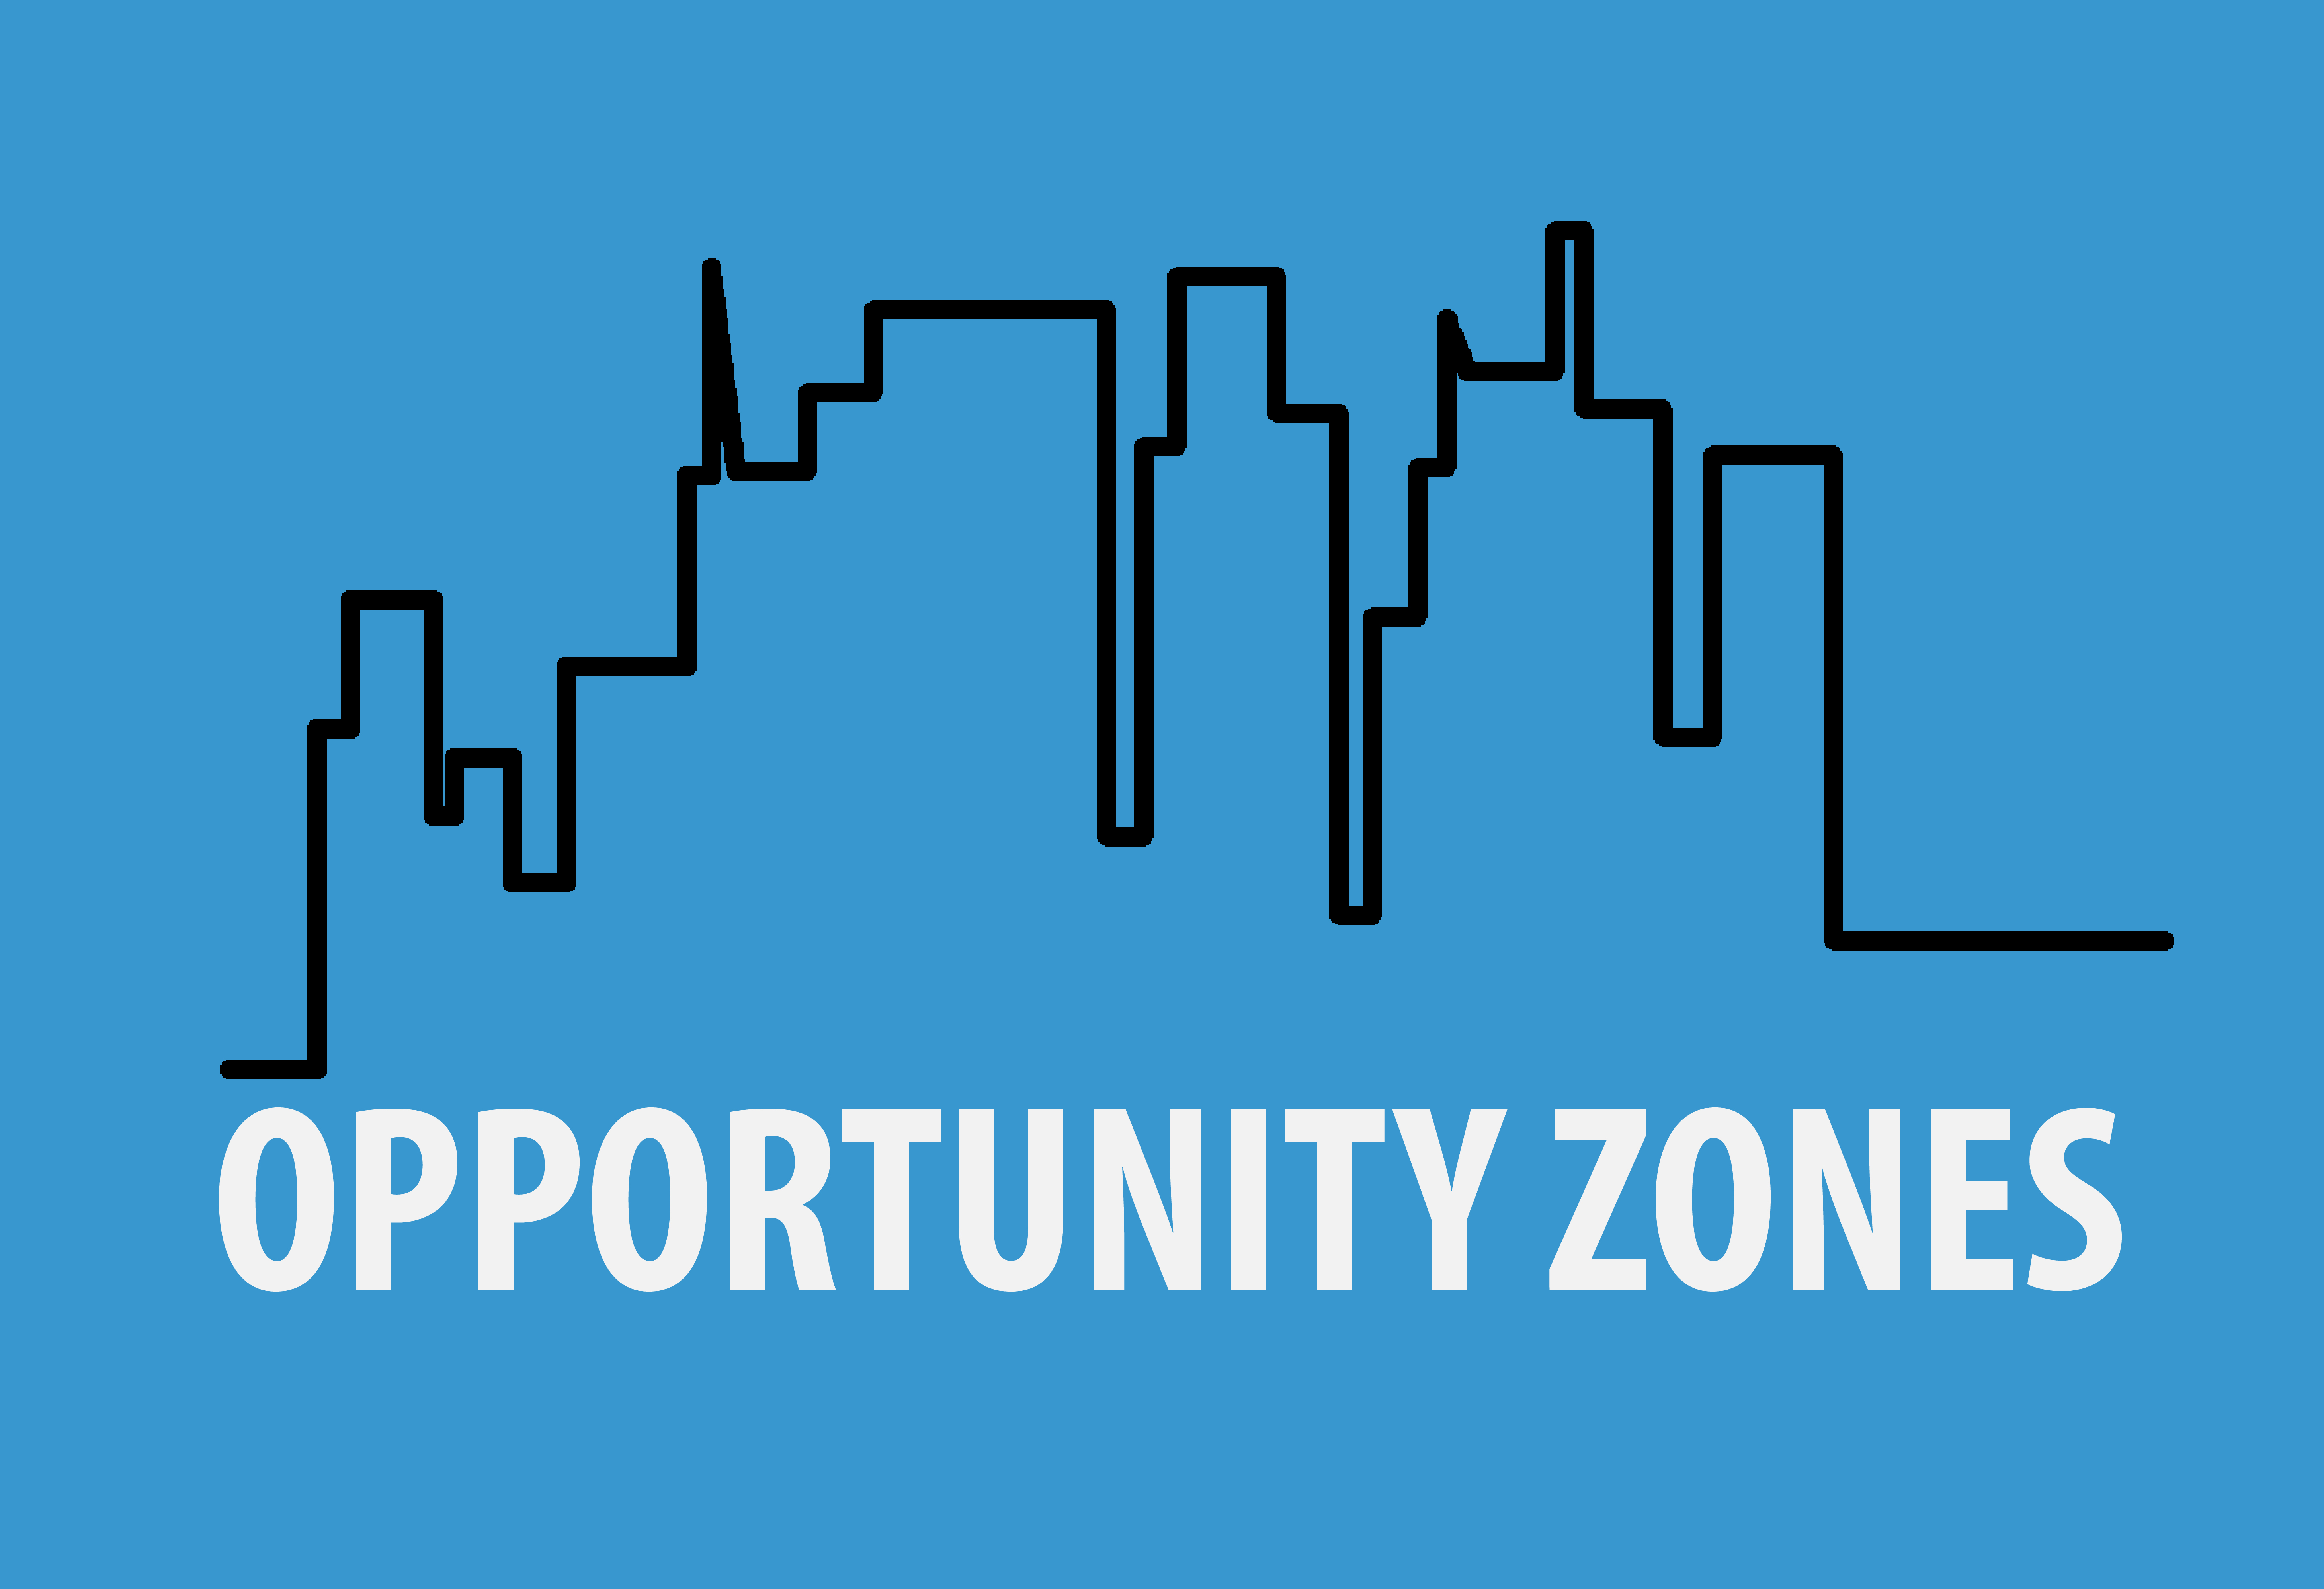 Opportunity Zone graphic